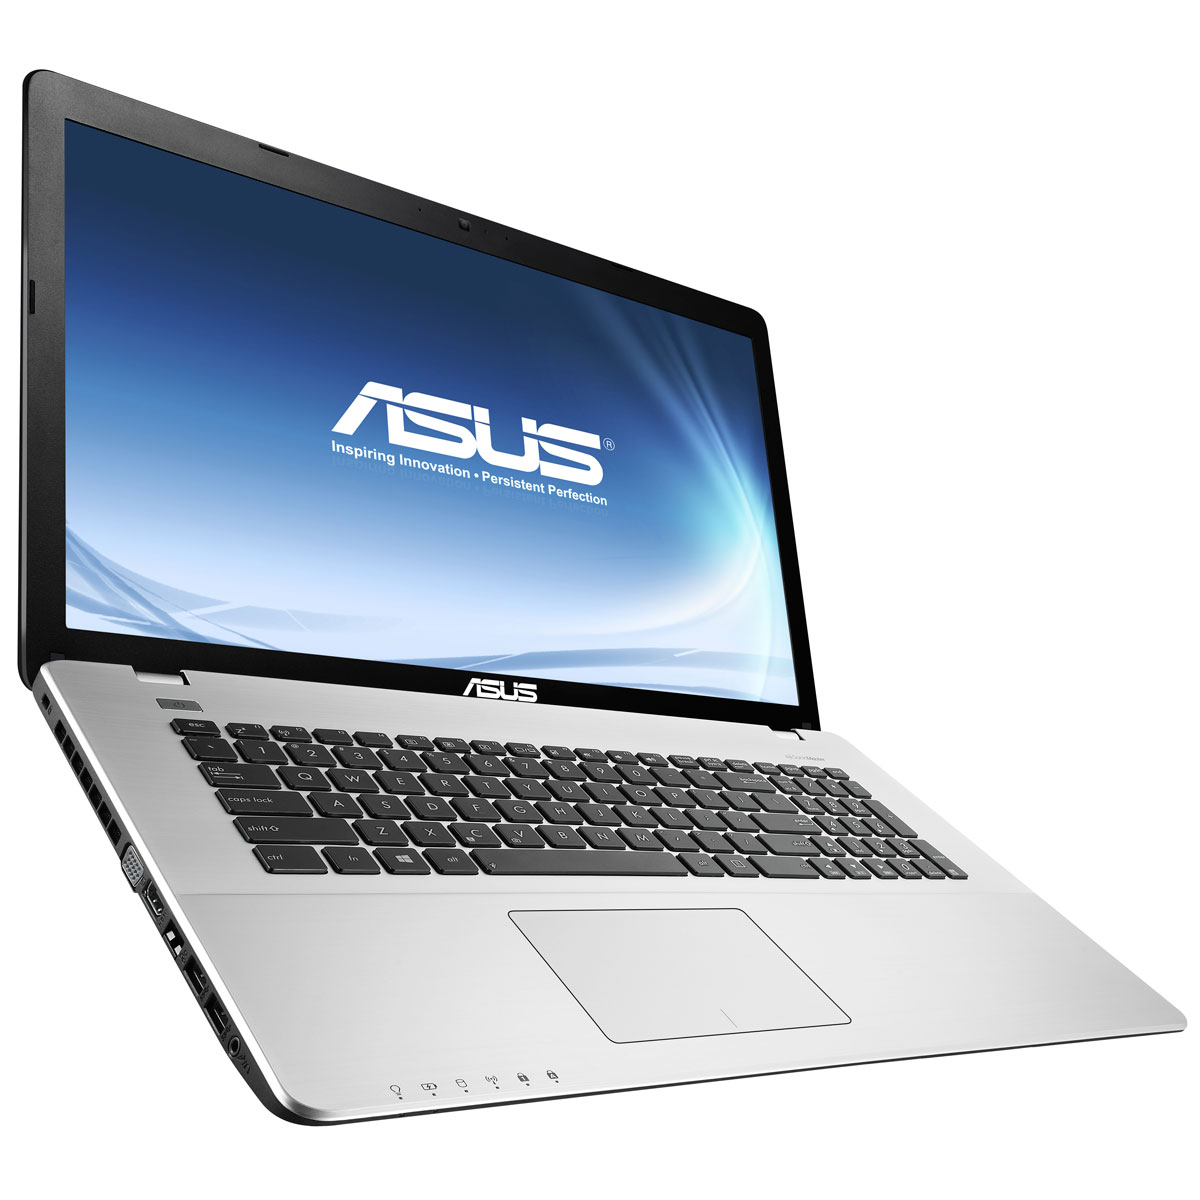 asus r751ln ty067h pc portable asus sur. Black Bedroom Furniture Sets. Home Design Ideas